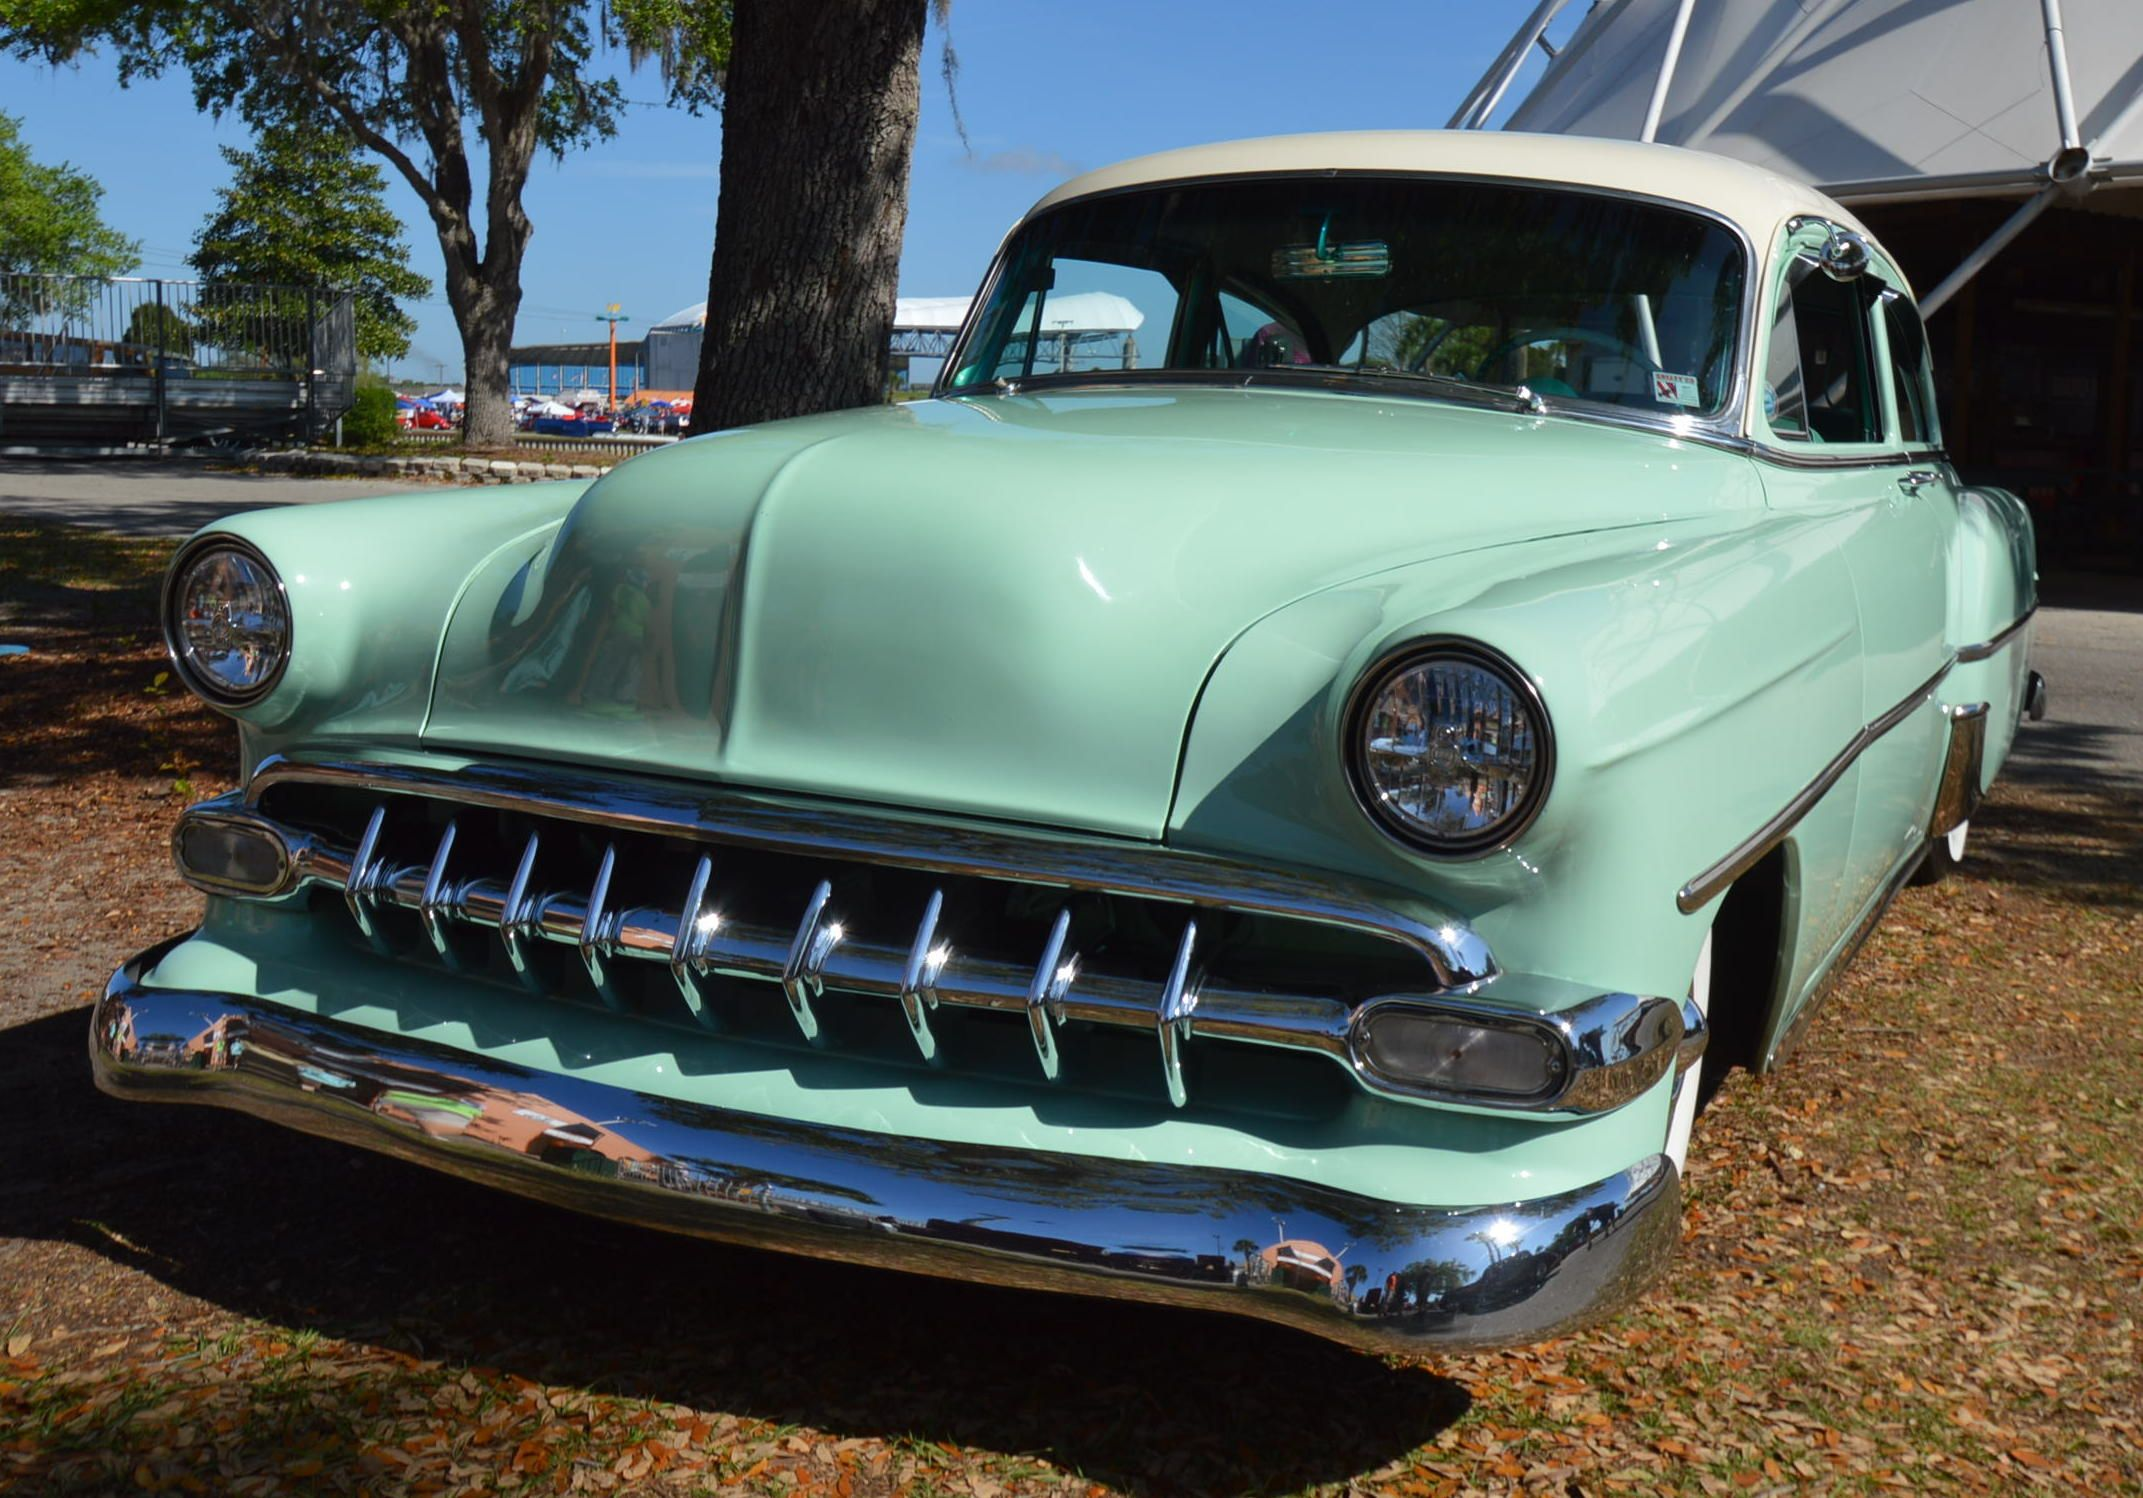 CarStorian At The National Street Rod Associations Car Show In - Classic car show tampa fl